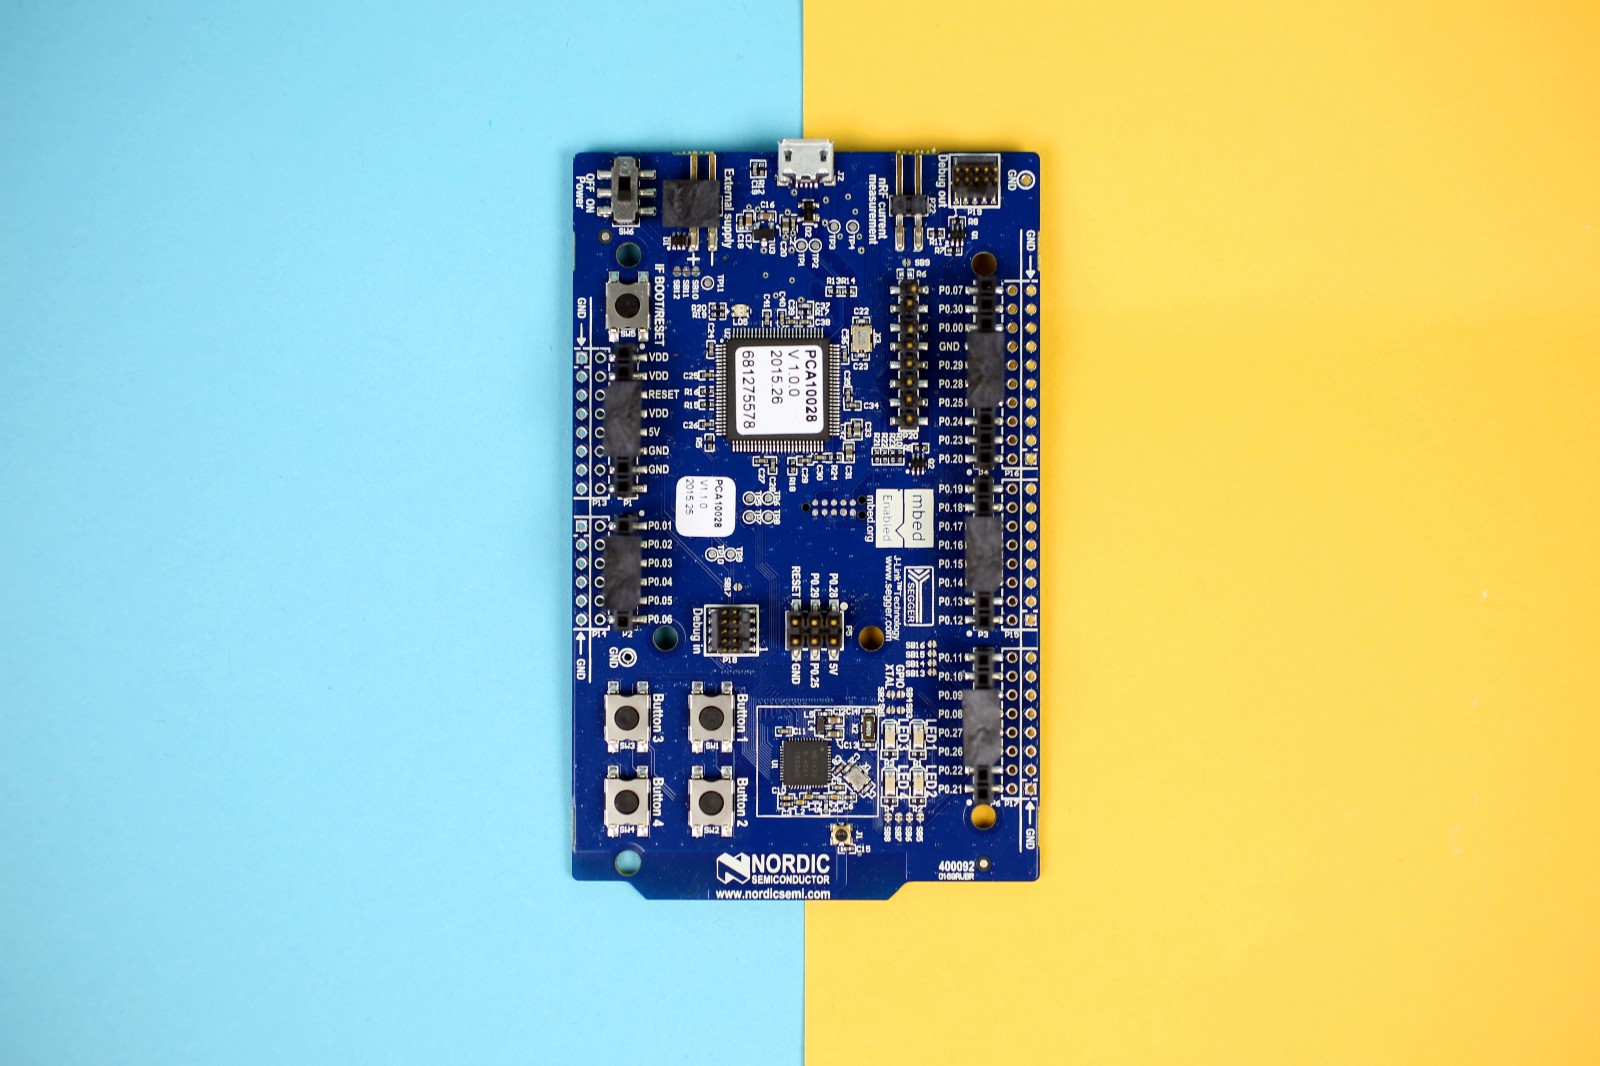 Materials And Processes Used In Prototyping Hardware Development Prototype Printed Circuit Board Pcb Maker Buy Rigid Image Courtesy Of Tomorrow Lab Boards